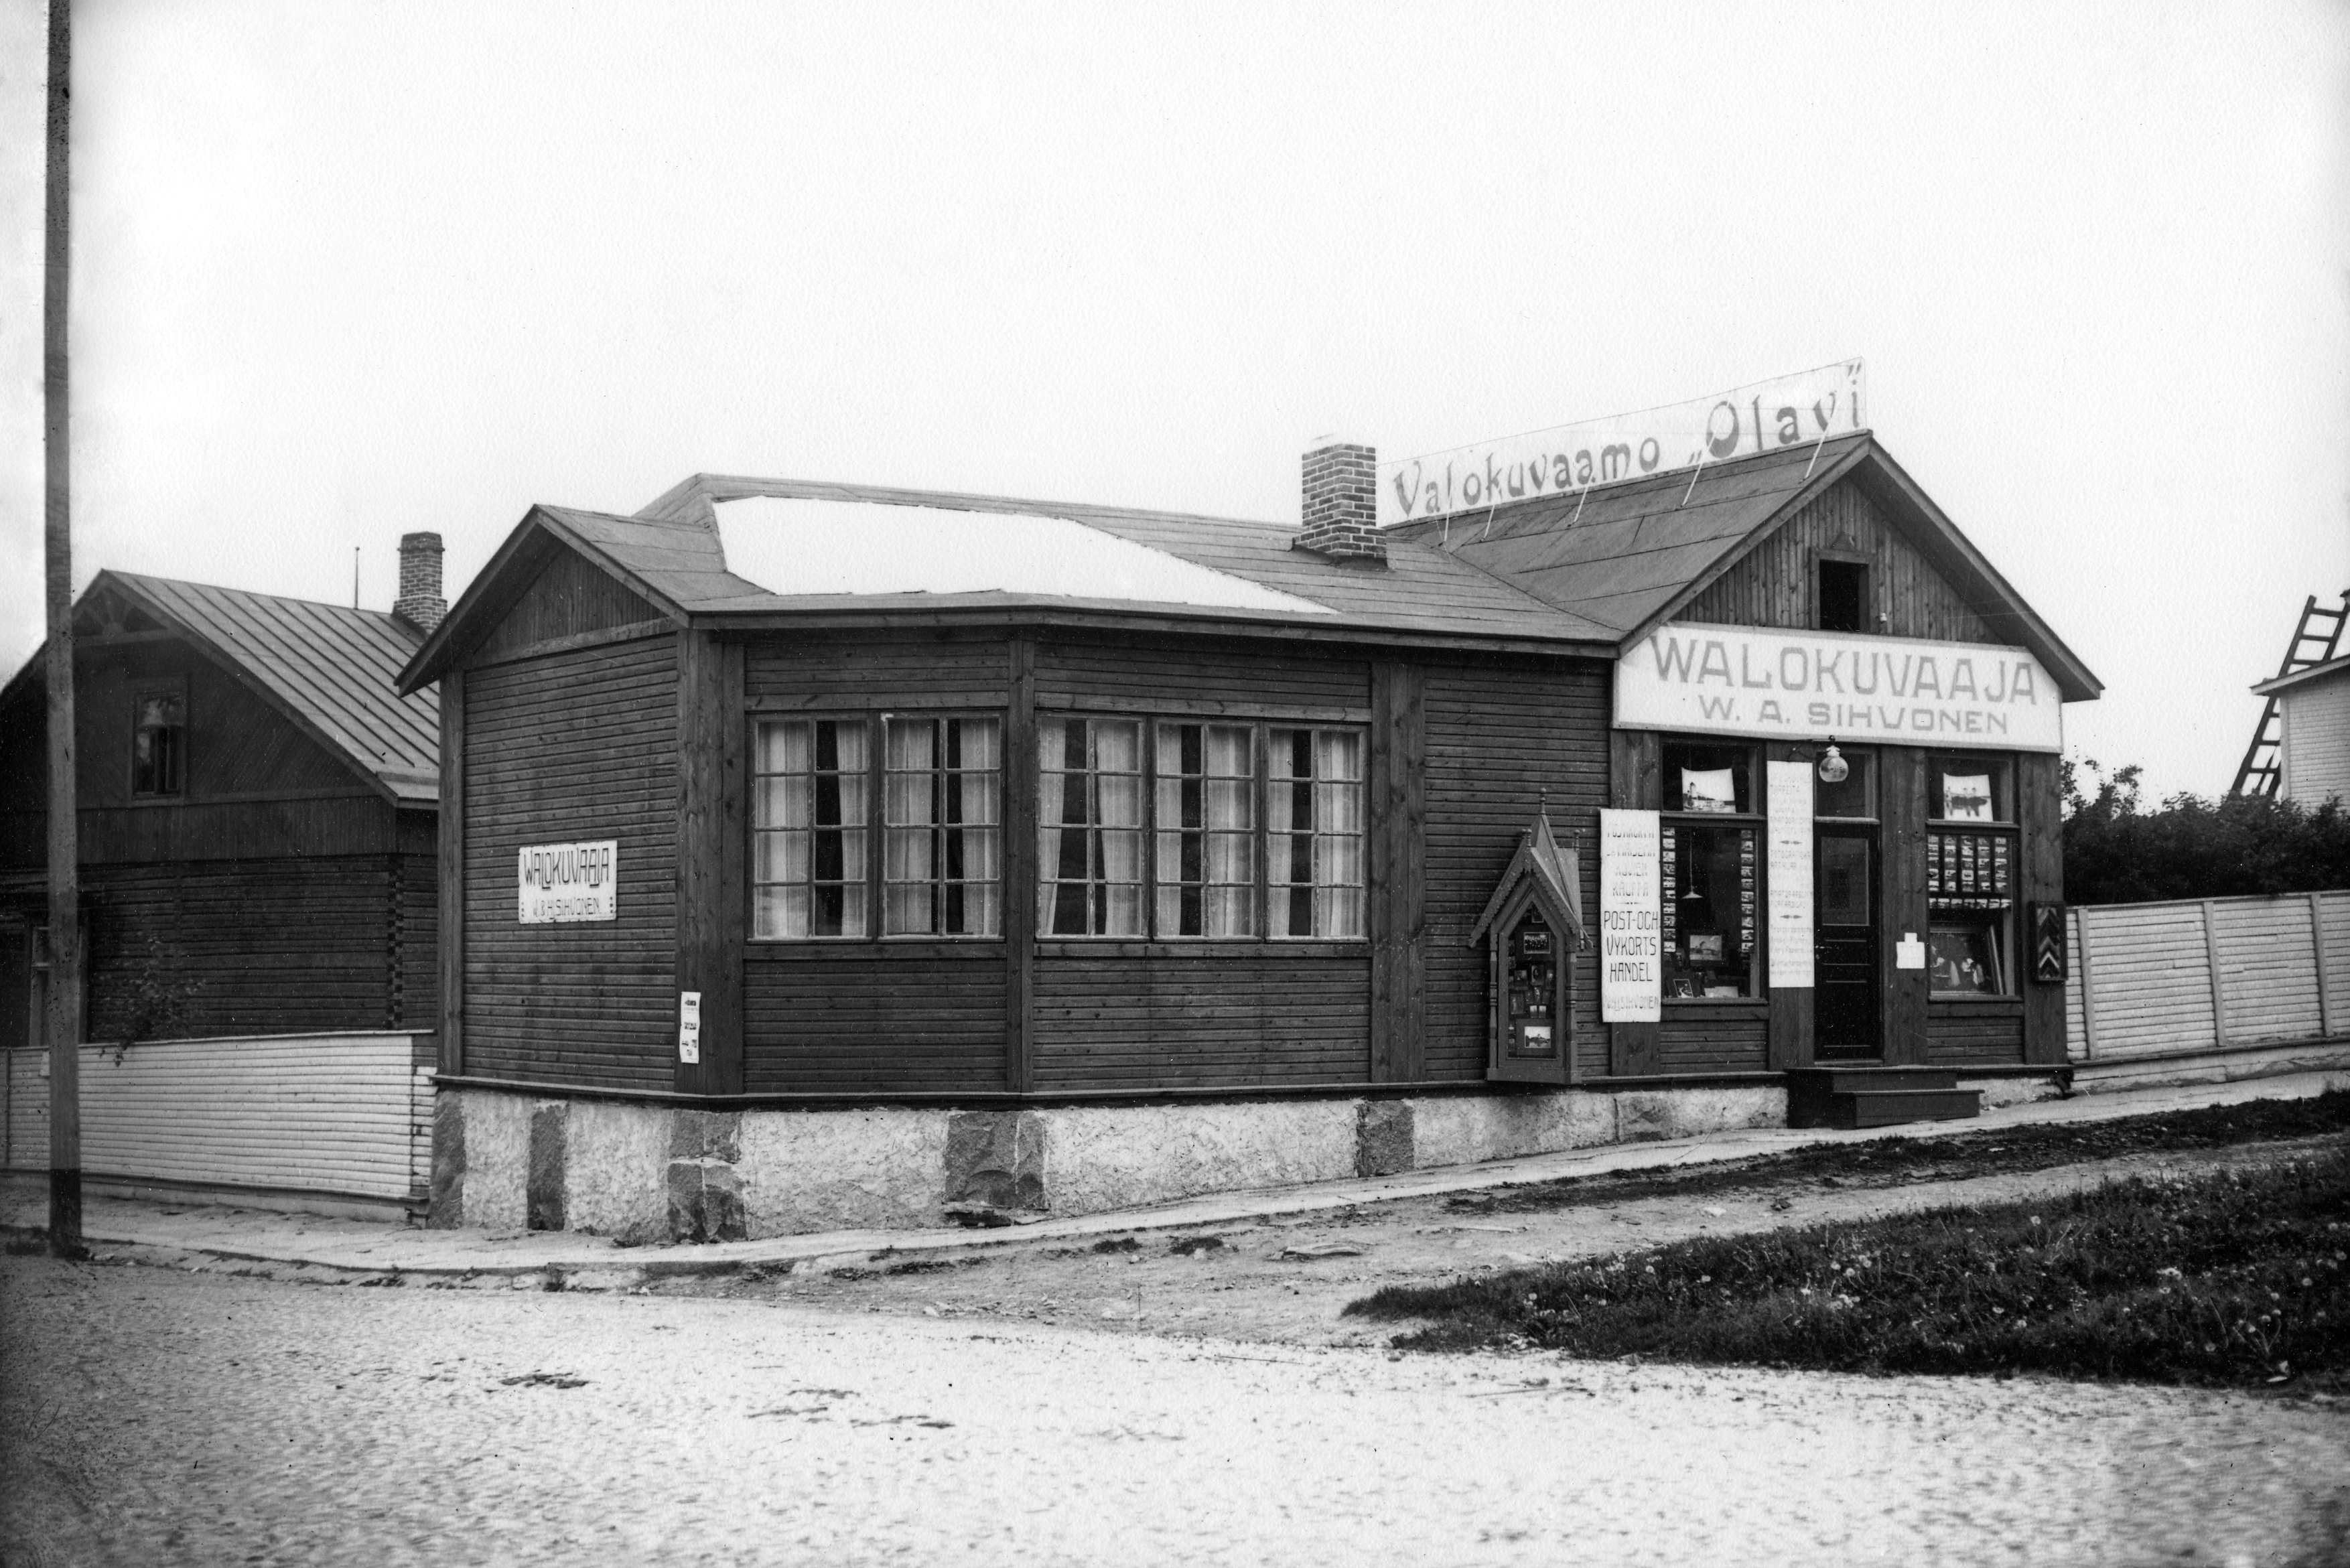 Photography studio Olavi of V. A. Sihvonen in Savonlinna.jpg